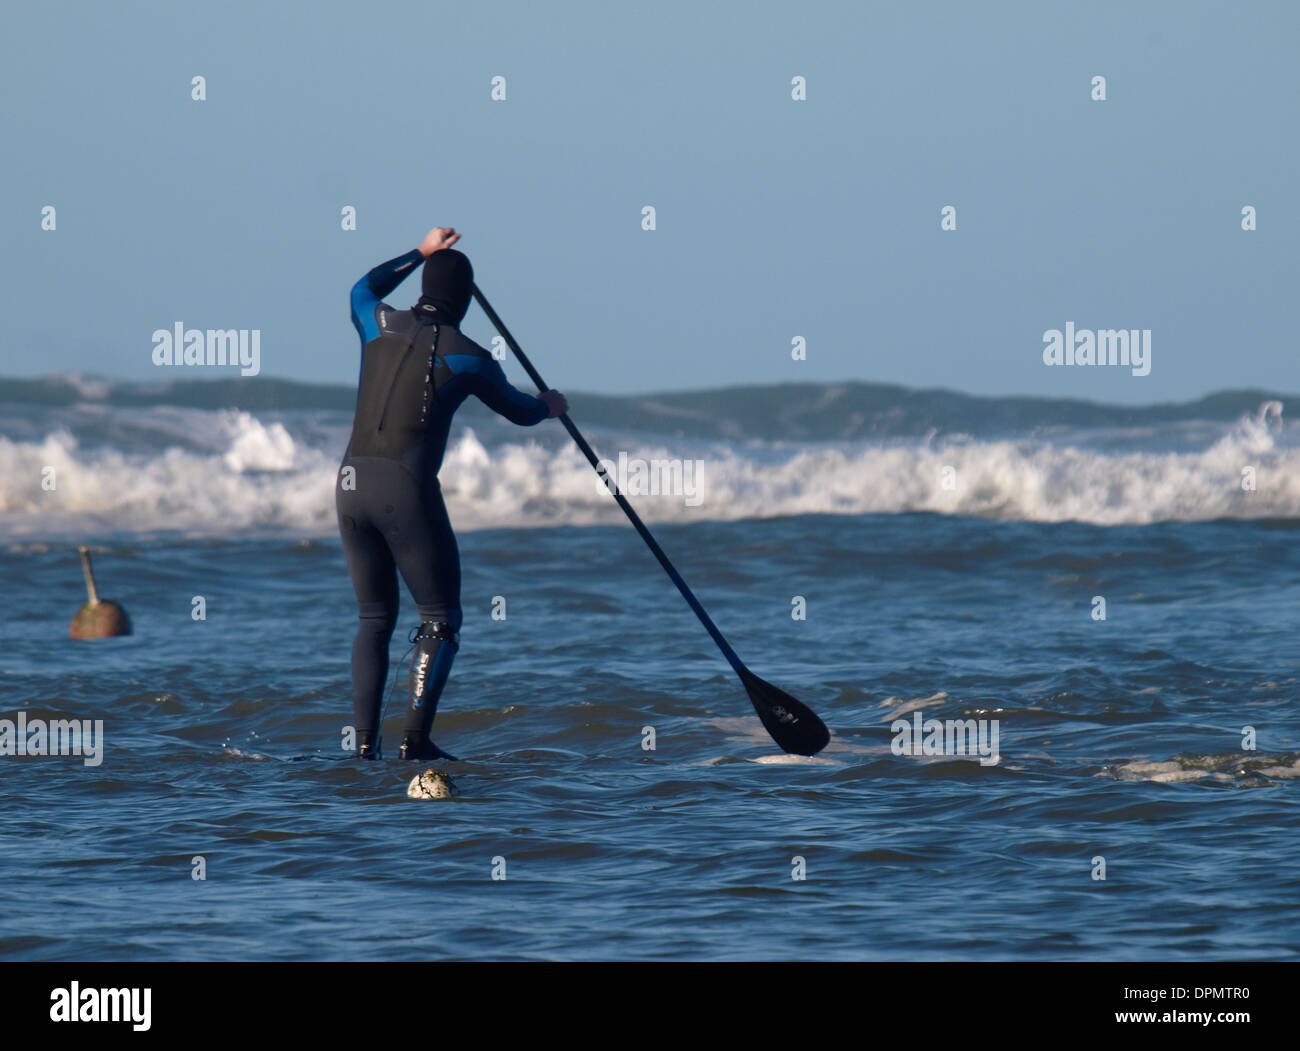 Stand up paddle boarder heading towards the waves, Bude, Cornwall, UK - Stock Image